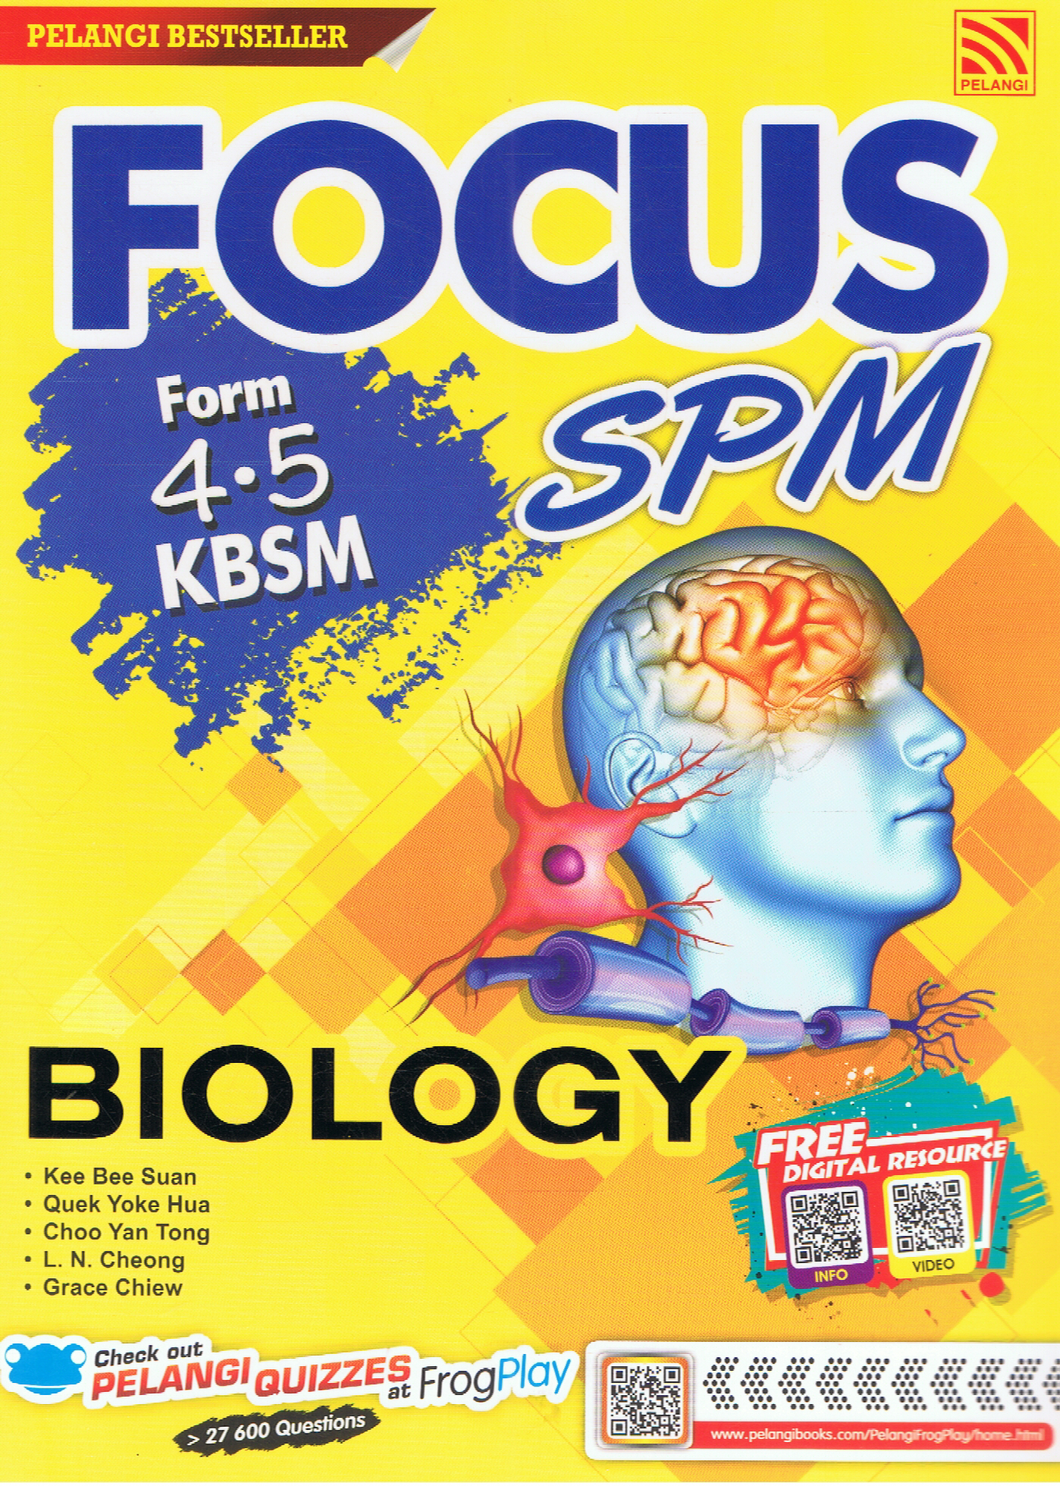 Focus SPM: Biology Form 4,5